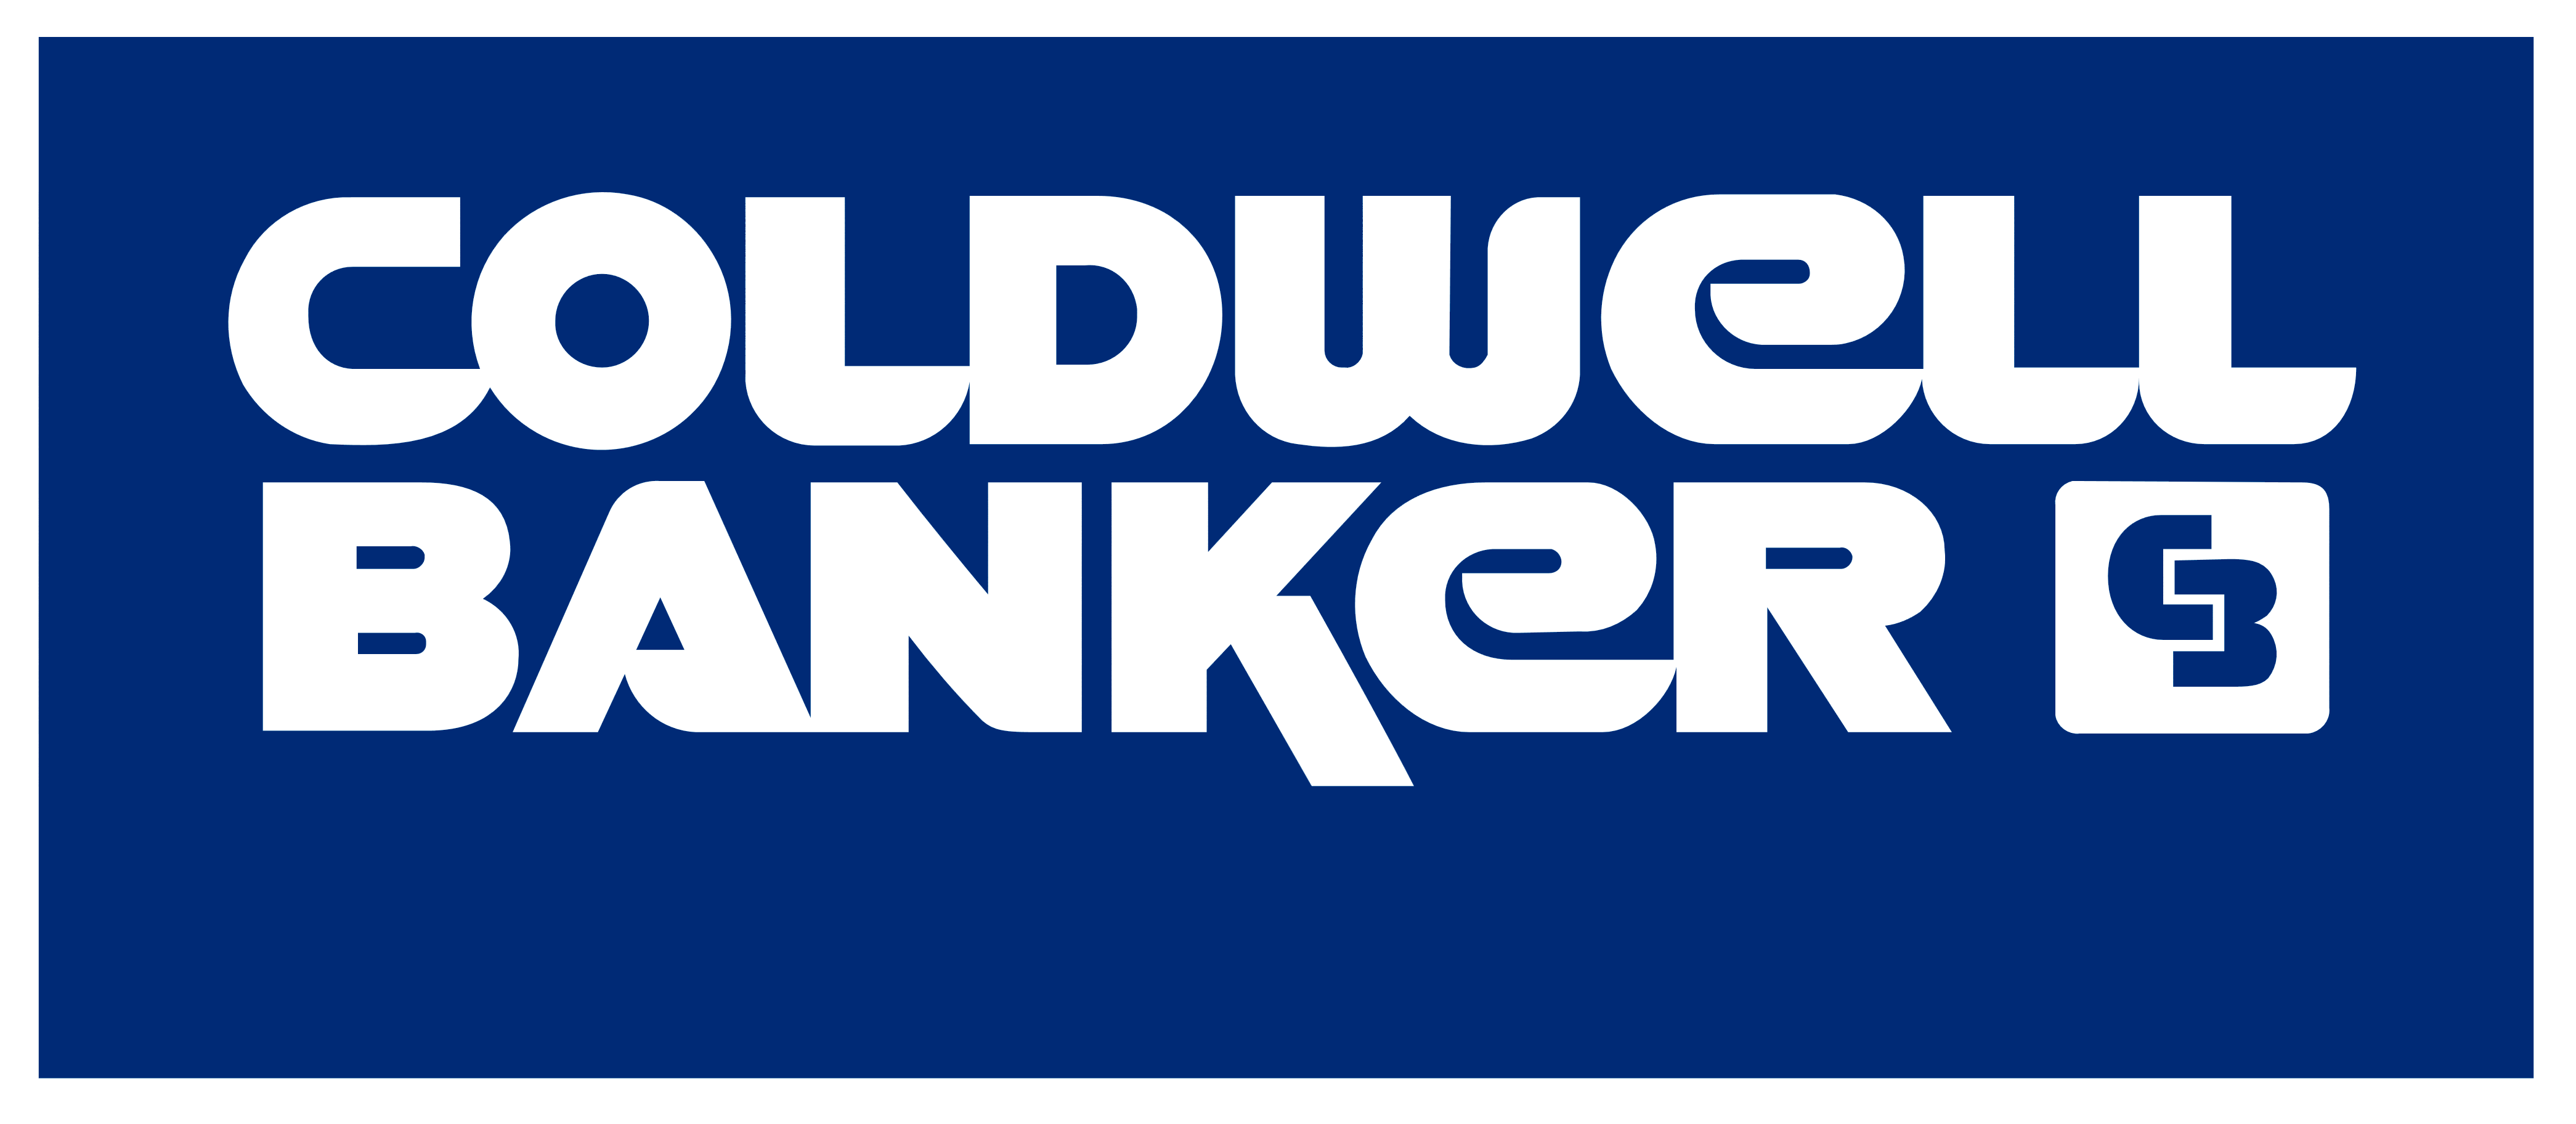 Coldwell Banker logo linking to company site